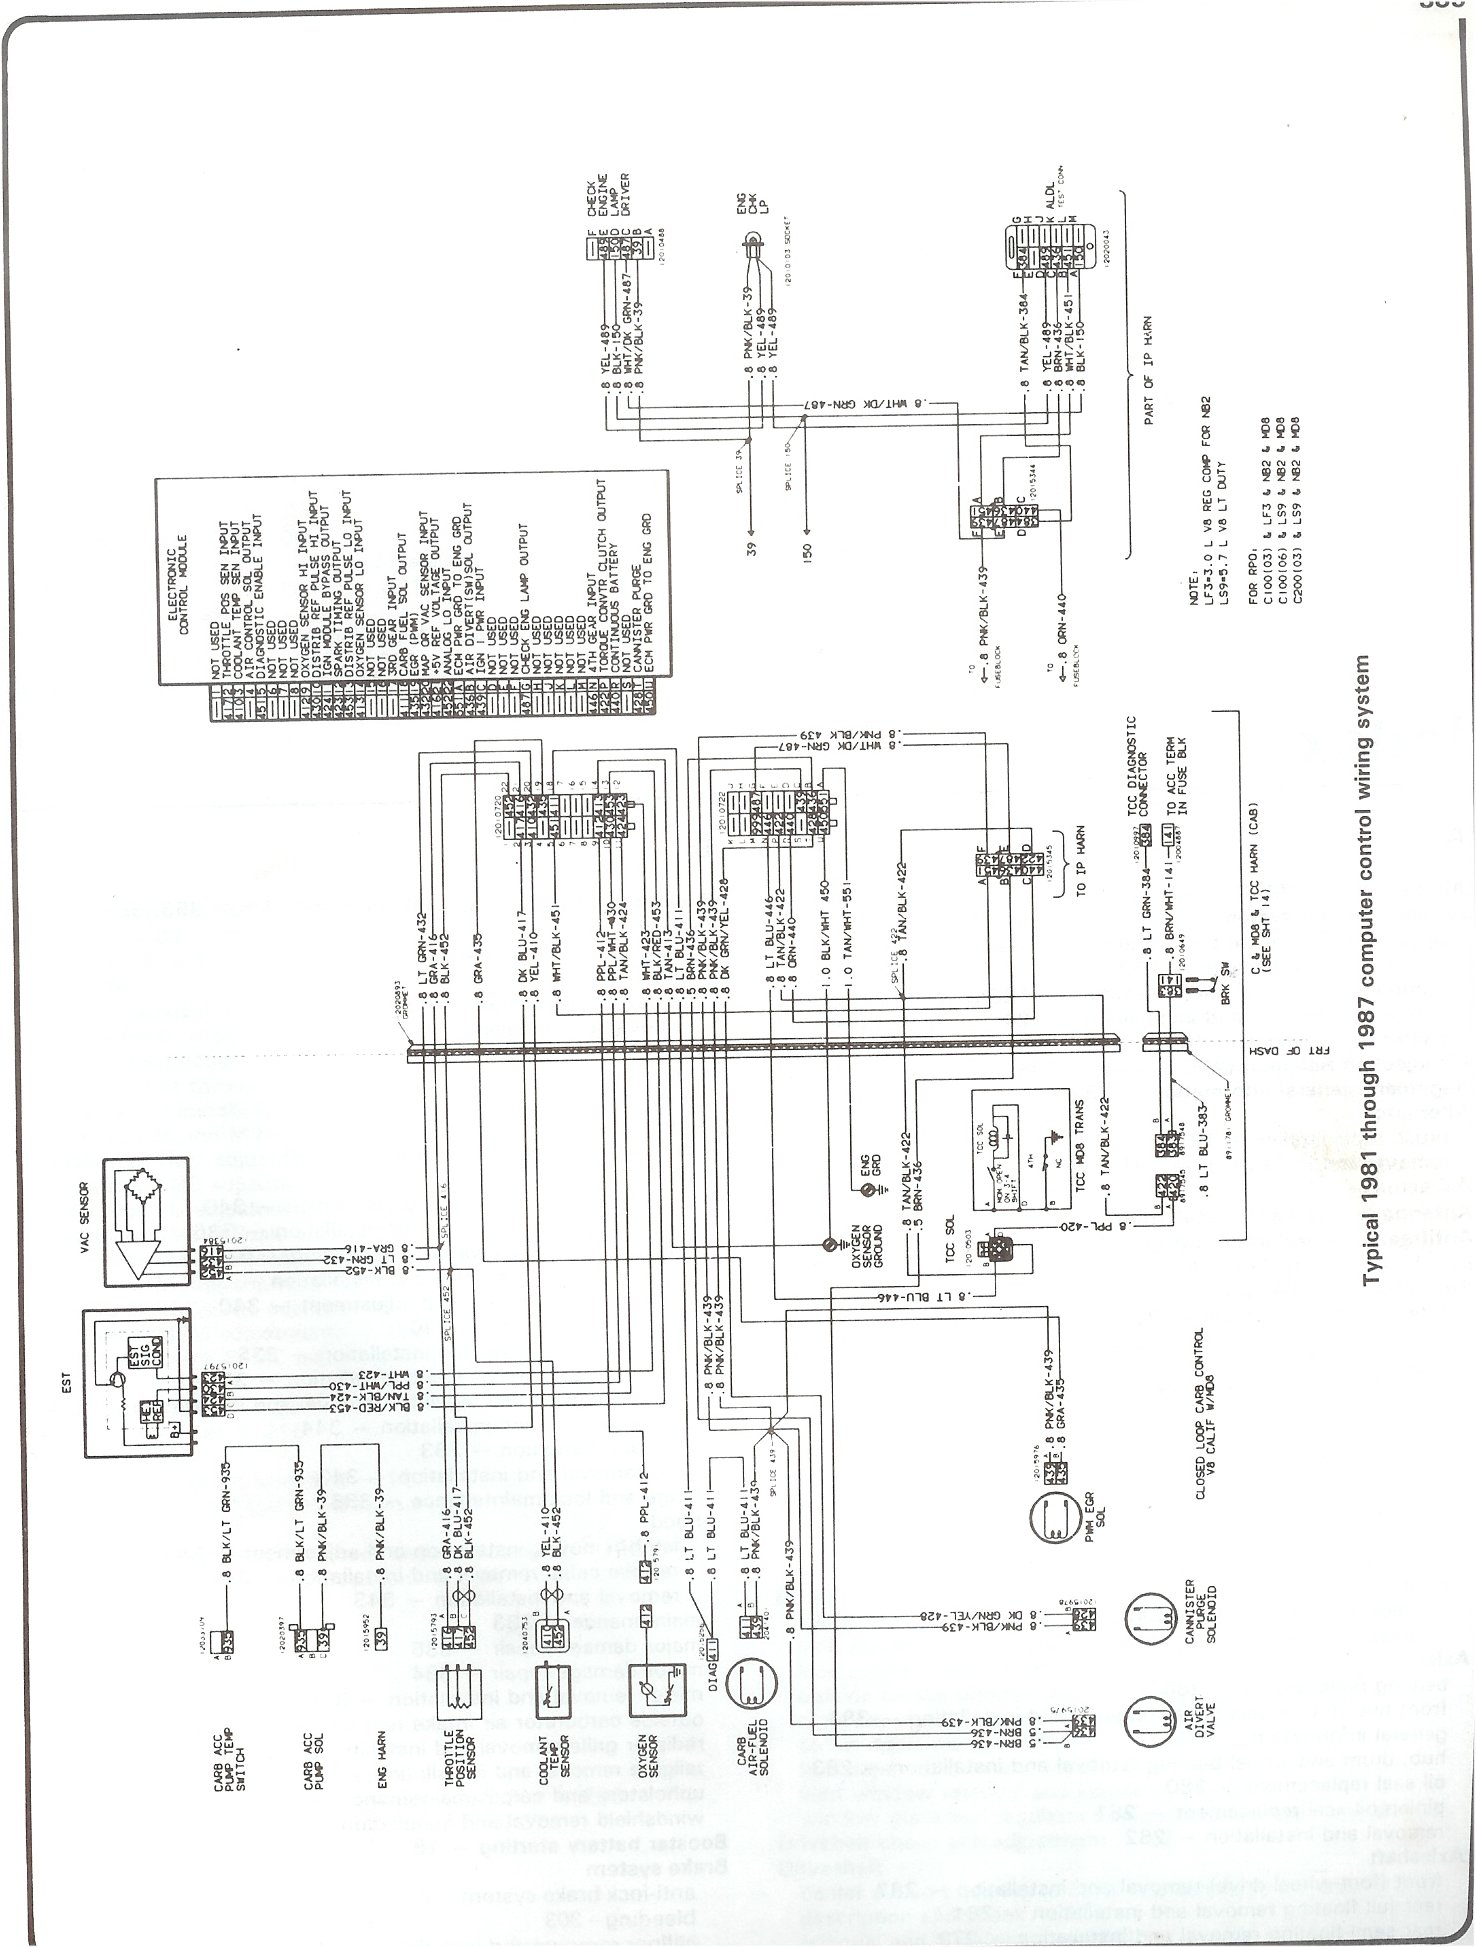 hight resolution of 1979 chevy c30 truck wiring diagram wiring diagram1979 chevy c30 truck wiring diagram